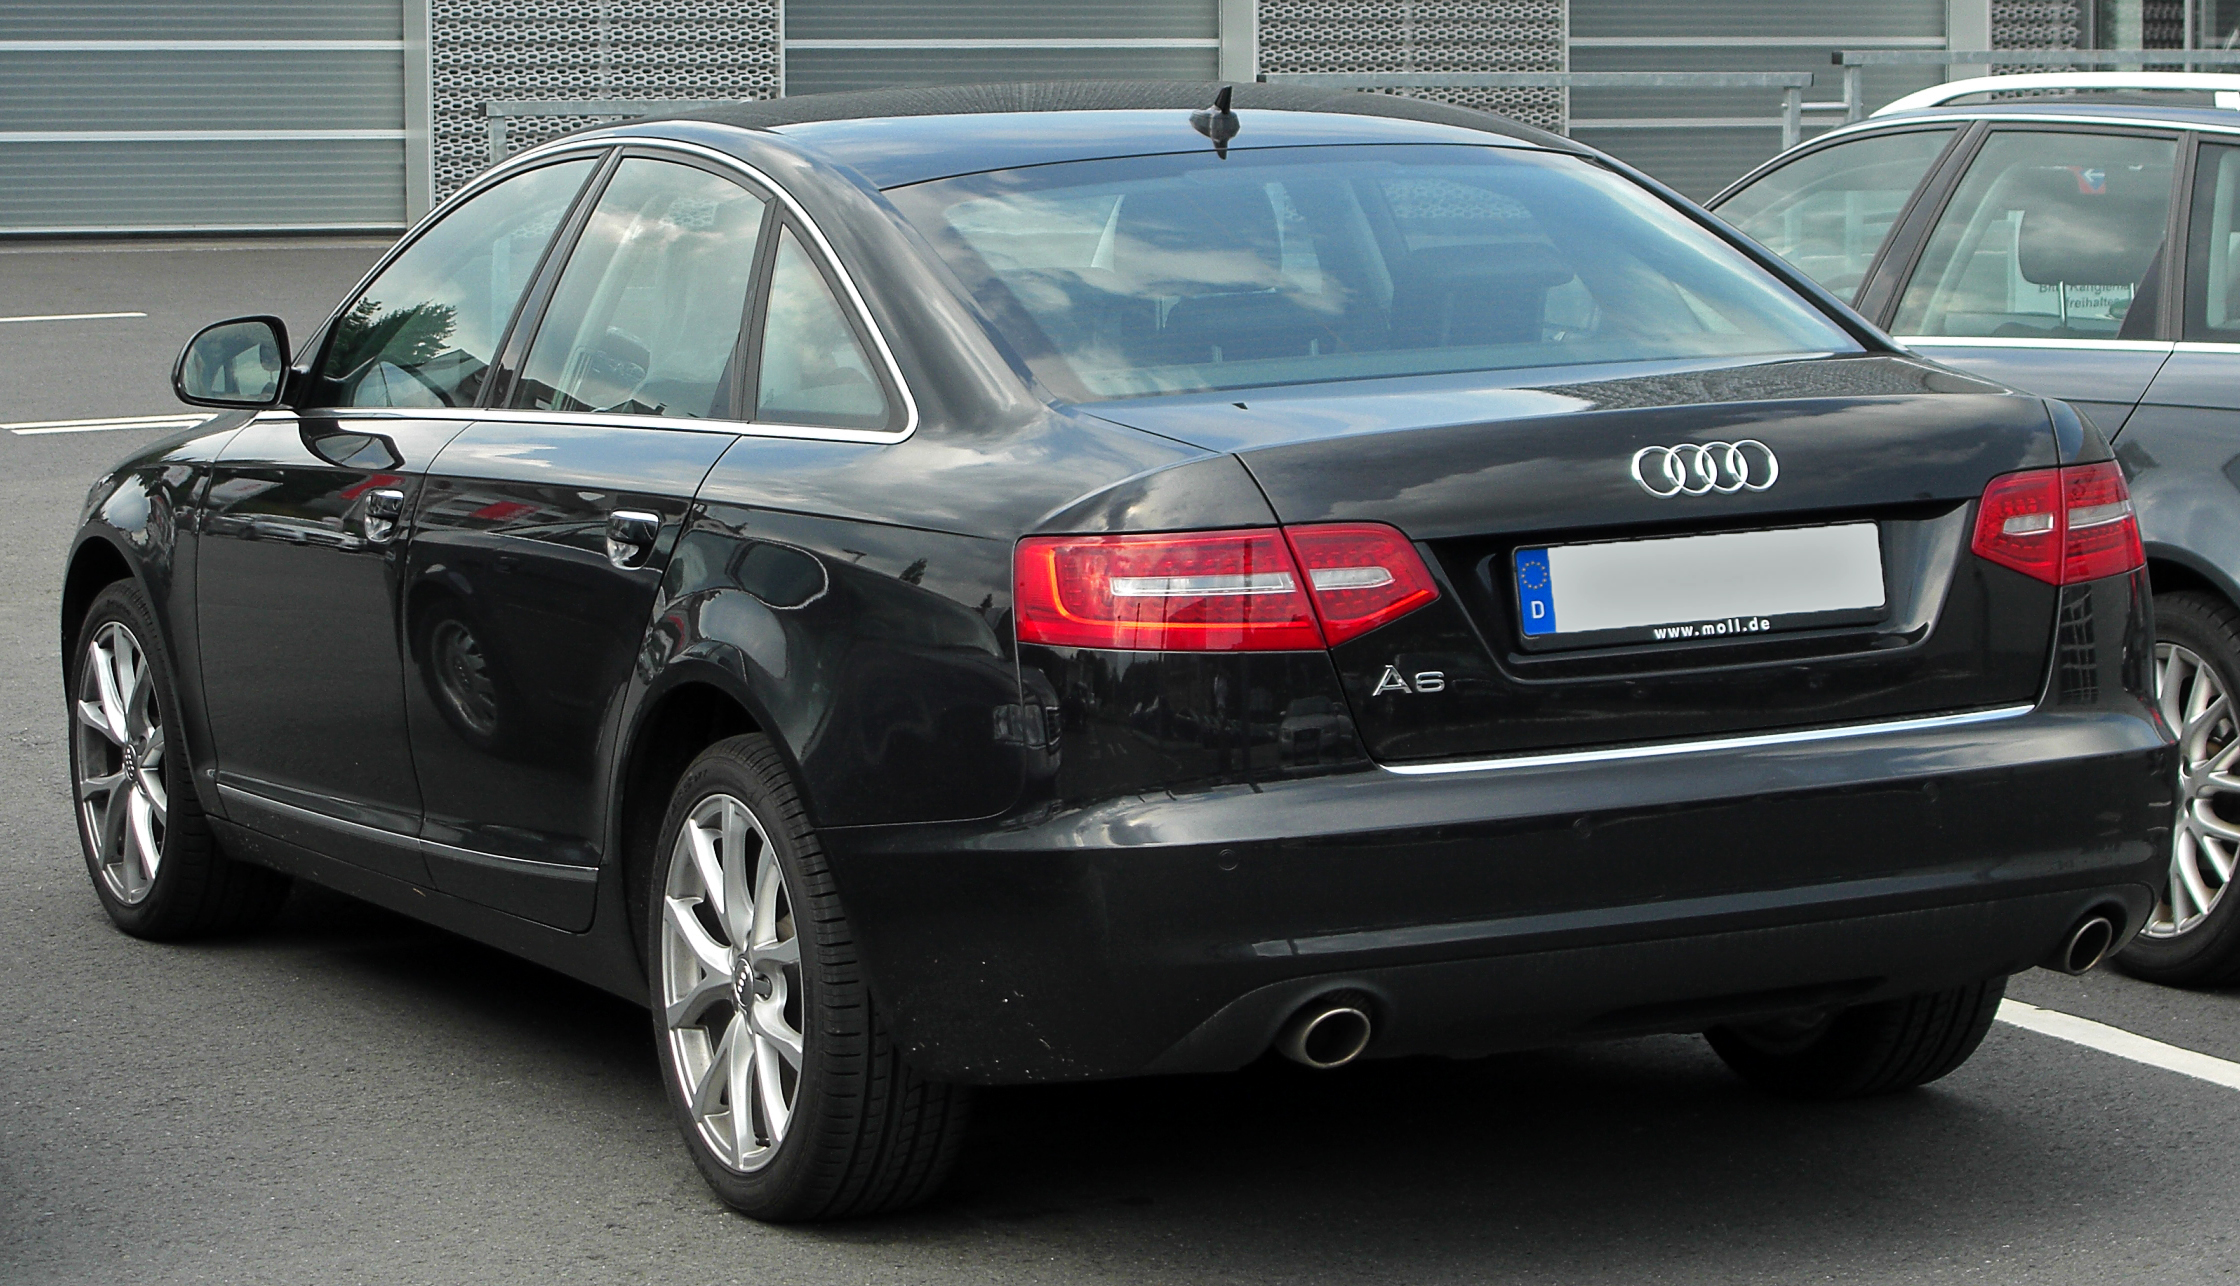 2010 audi a6 information and photos momentcar. Black Bedroom Furniture Sets. Home Design Ideas